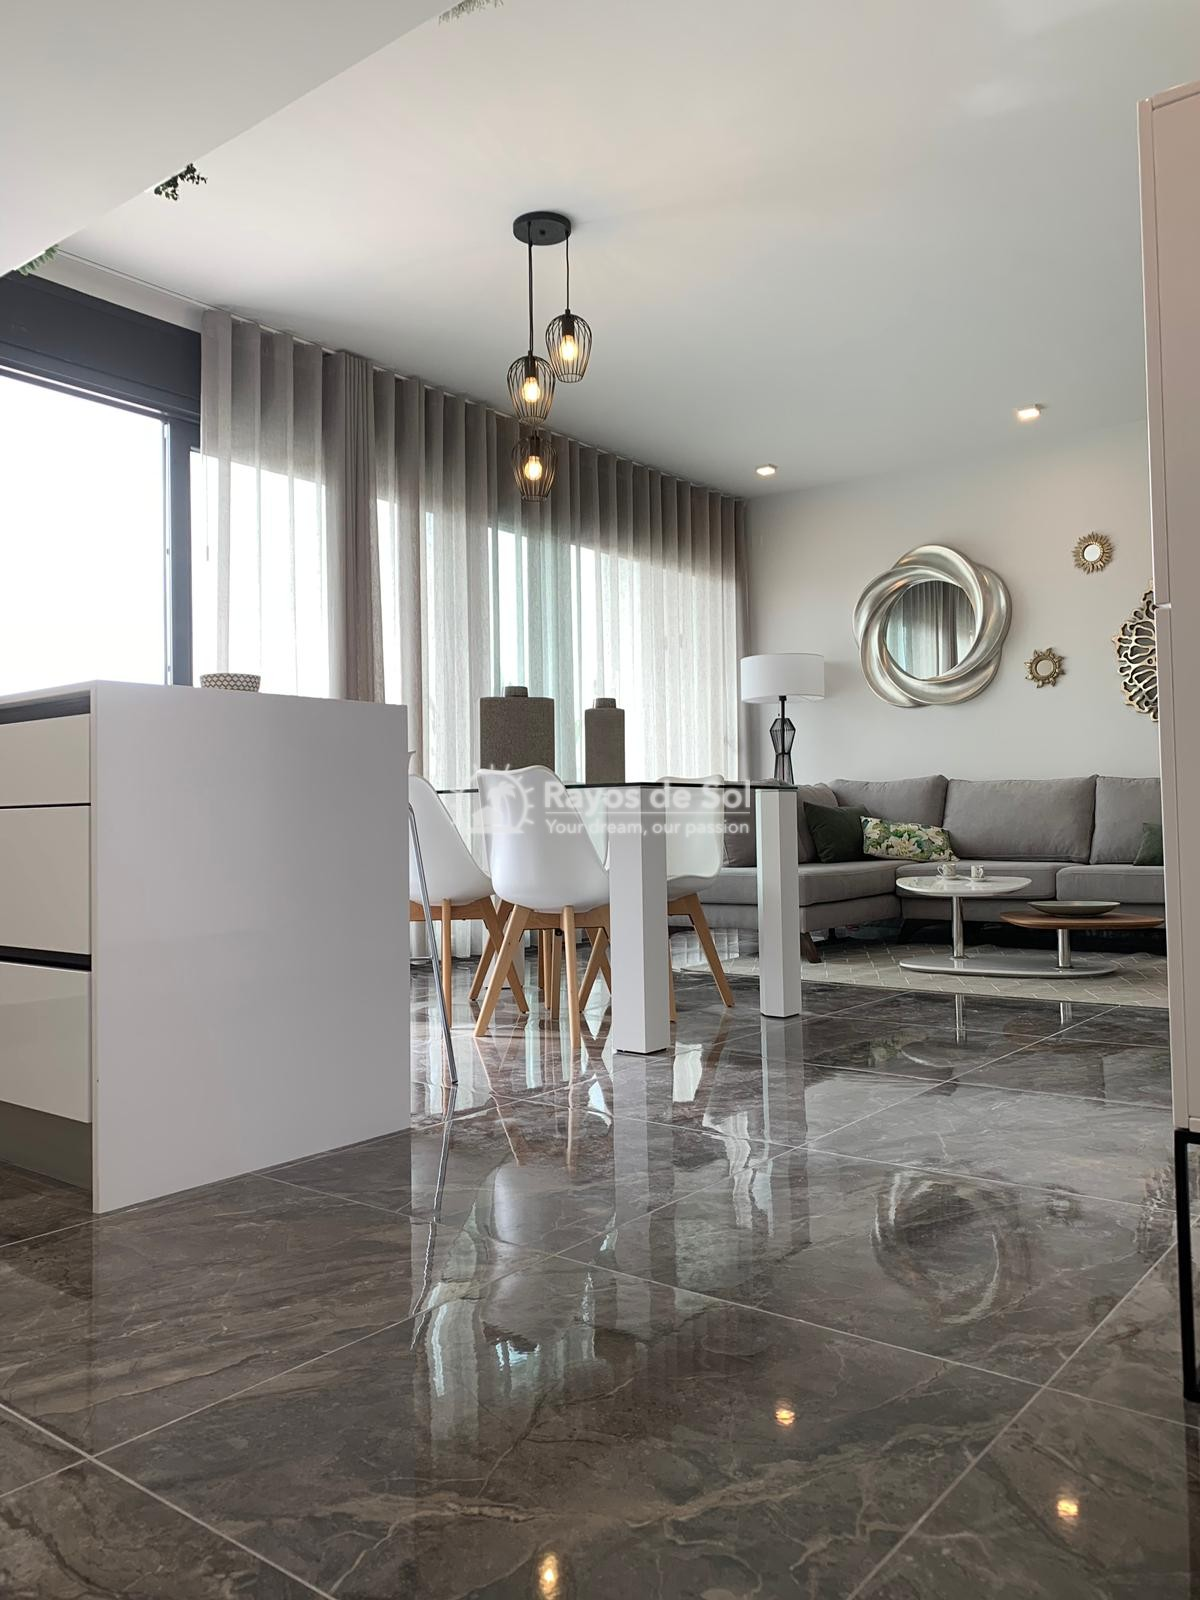 Keyready penthouse  in Orihuela Costa, Costa Blanca (amanecer3-ph) - 2